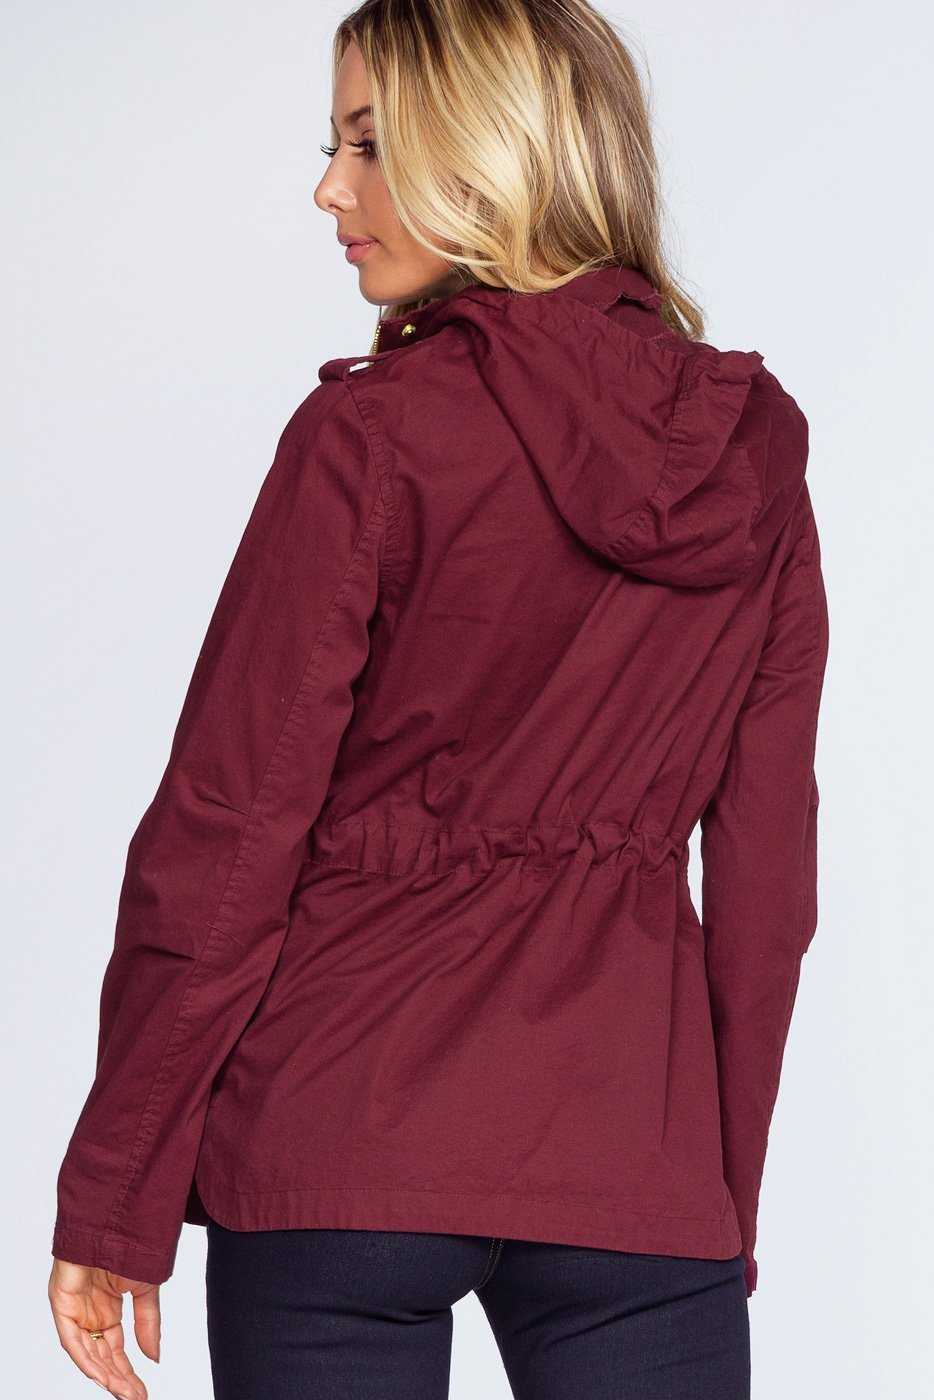 Jackets - Mercer Jacket - Burgundy